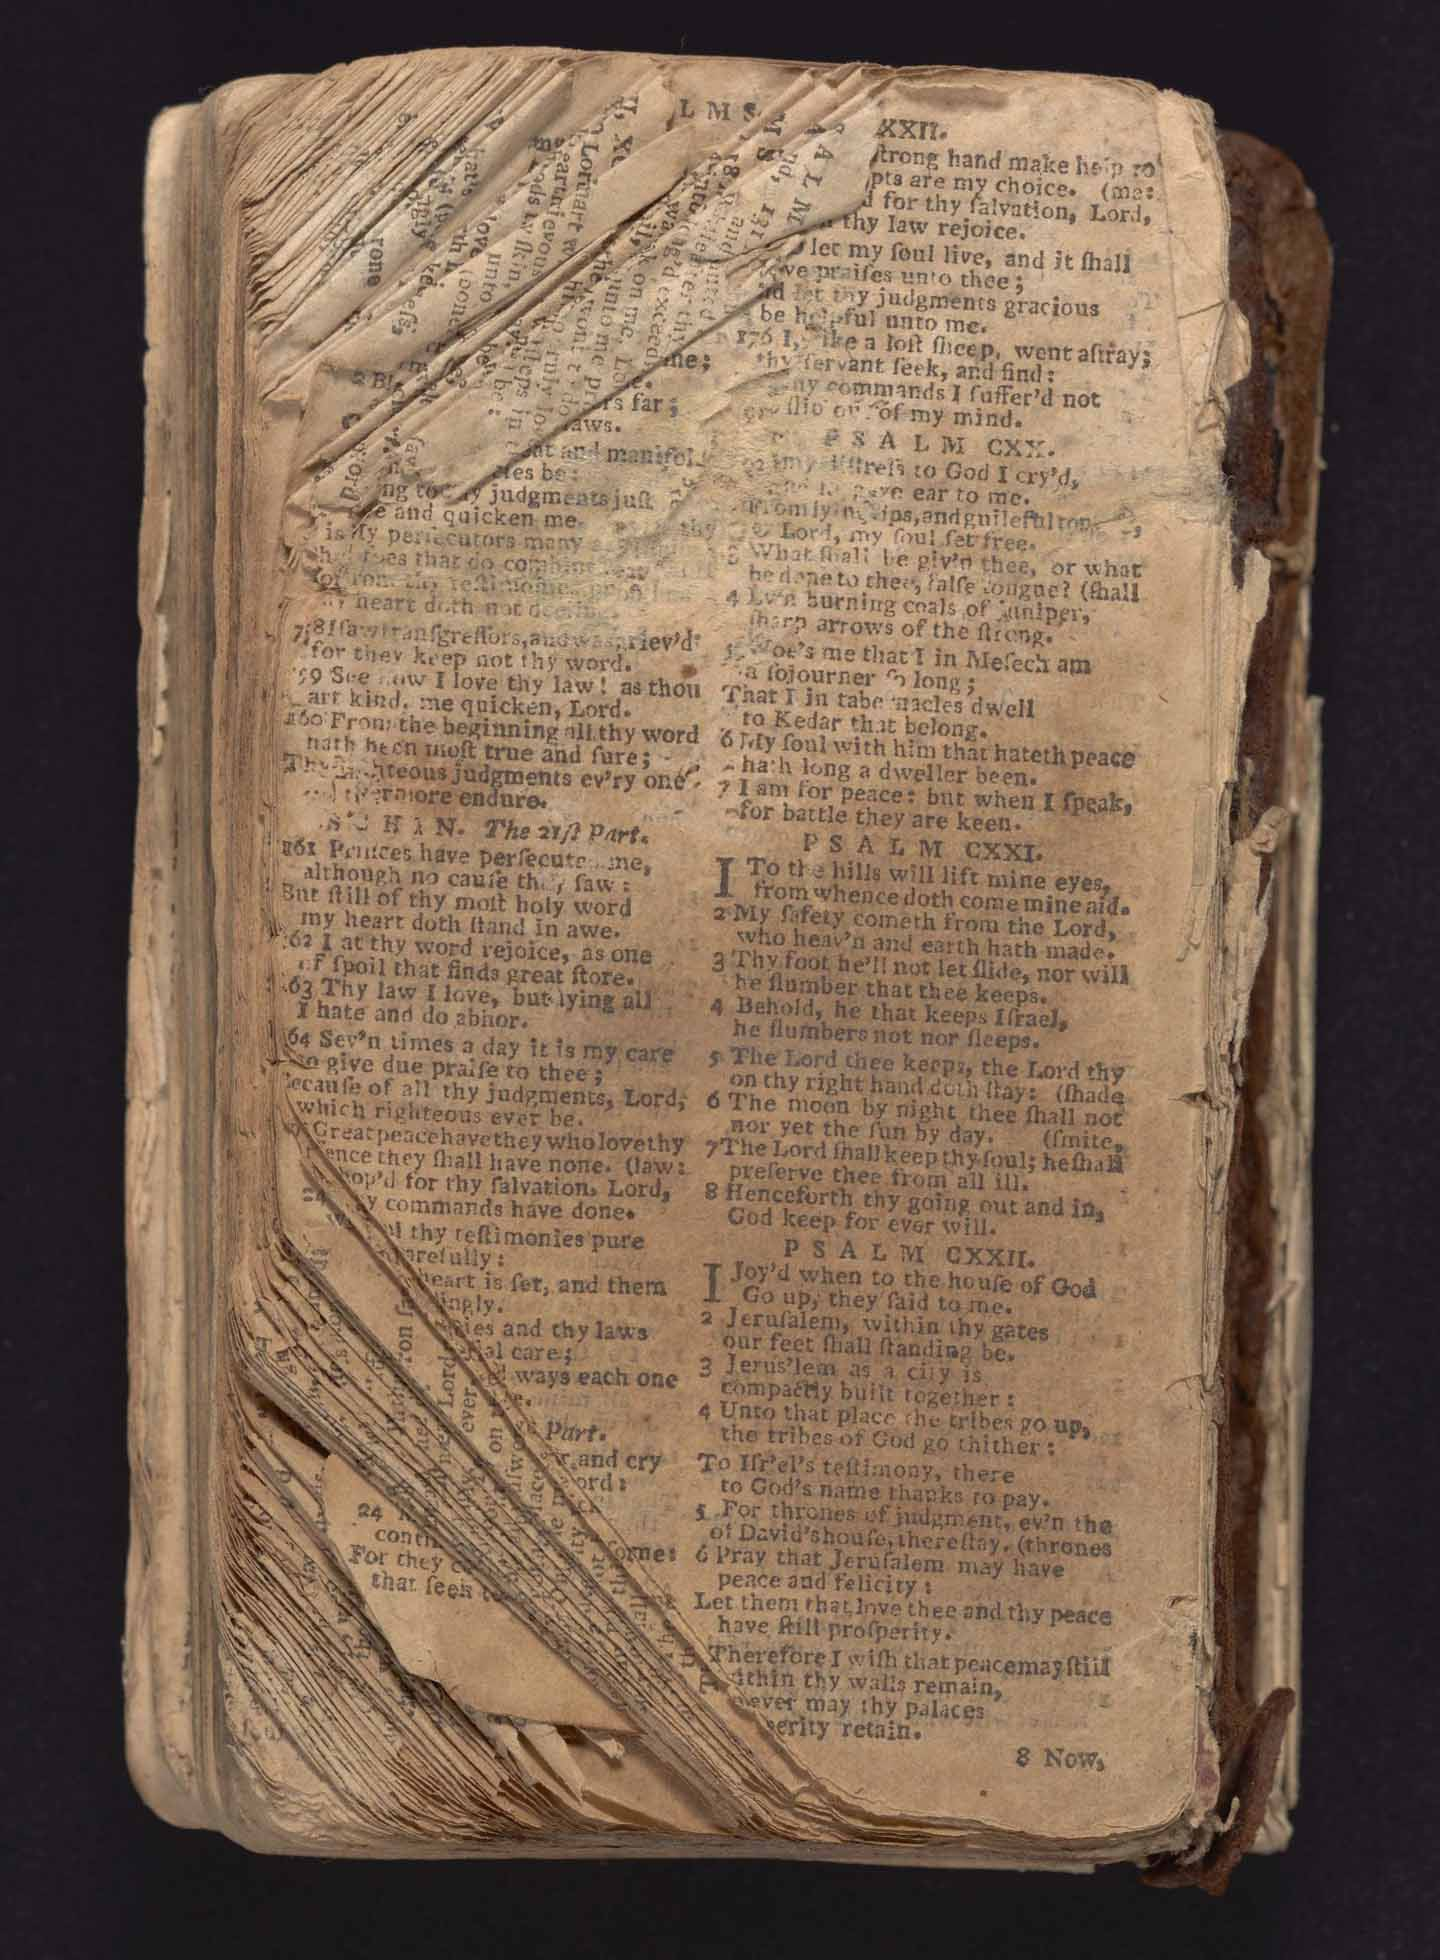 The museum features the small Bible that belonged to Nat Turner, the pastor who led a bloody slave revolt. The Books of Genesis, part of Leviticus, and Revelation are missing. The first page opens with Leviticus 4:32. From the Collection of the Smithsonian National Museum of African American History and Culture, gift of Maurice A. Person and Noah and Brooke Porter.